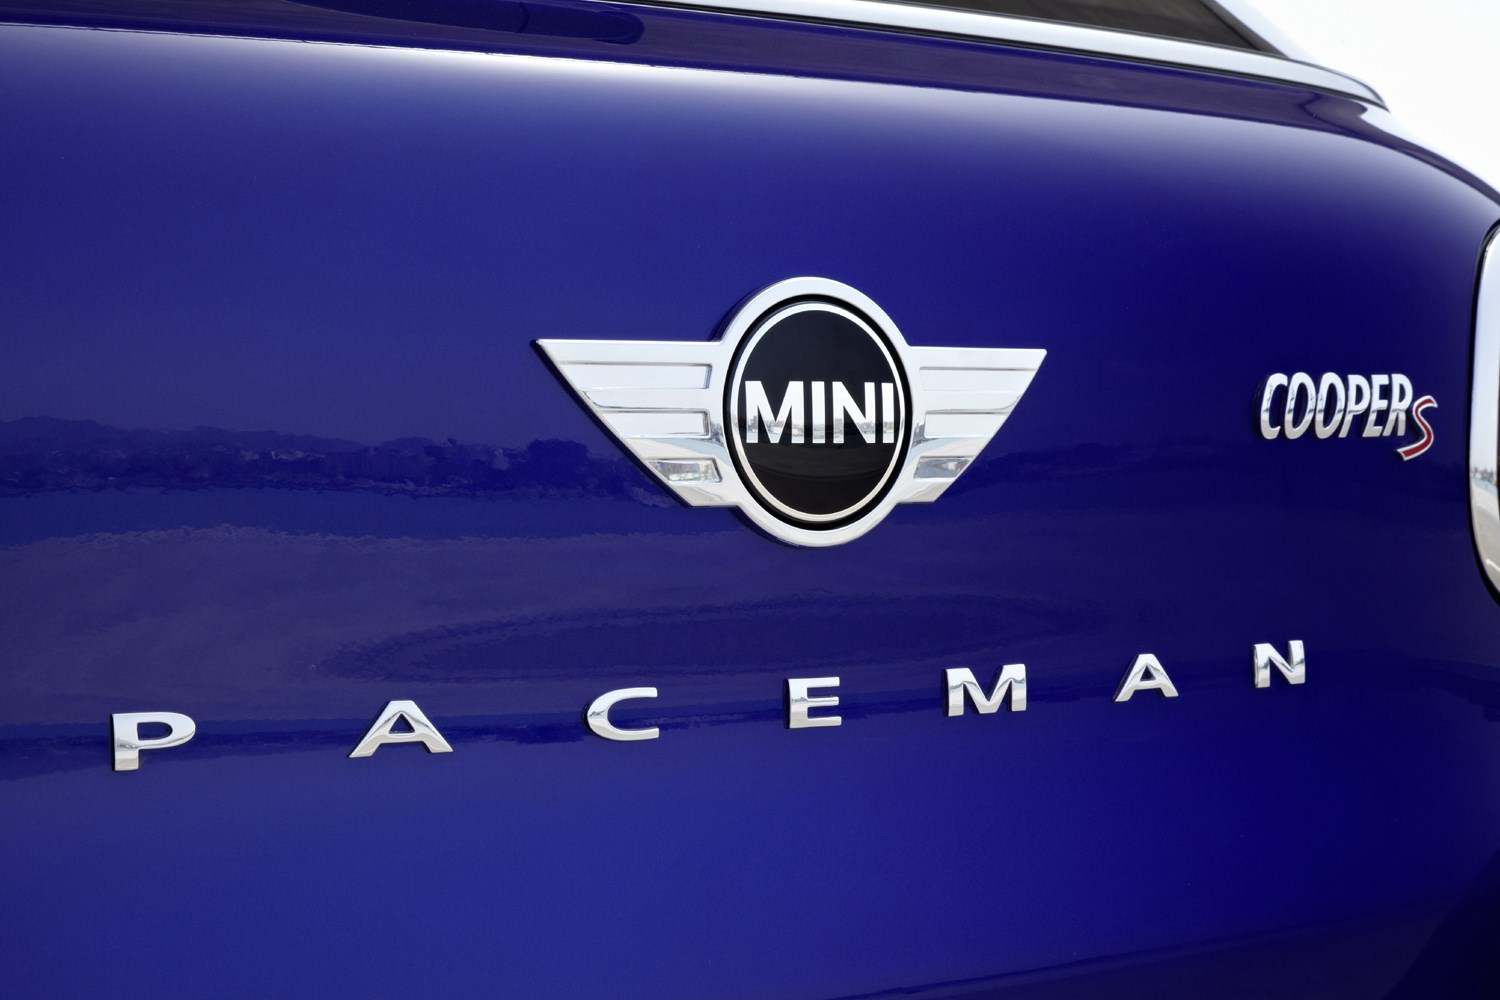 Mini Paceman Coupe 2013 2016 Features Equipment And Accessories Cooper Cruise Control Diagram Parkers